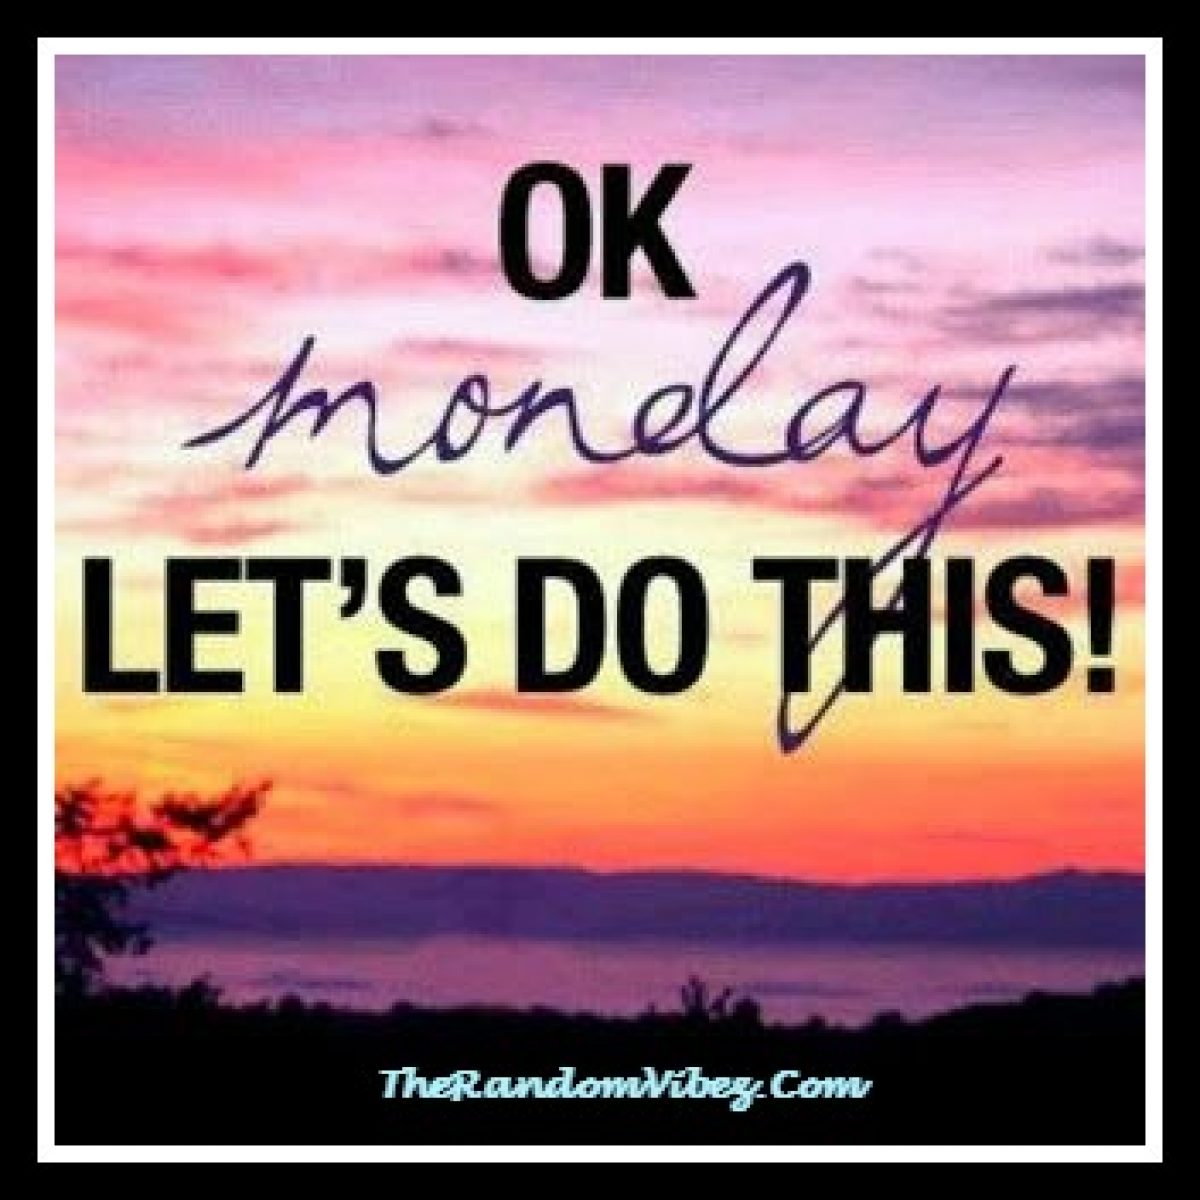 50 Monday Inspirational Quotes And Images For A Great Start